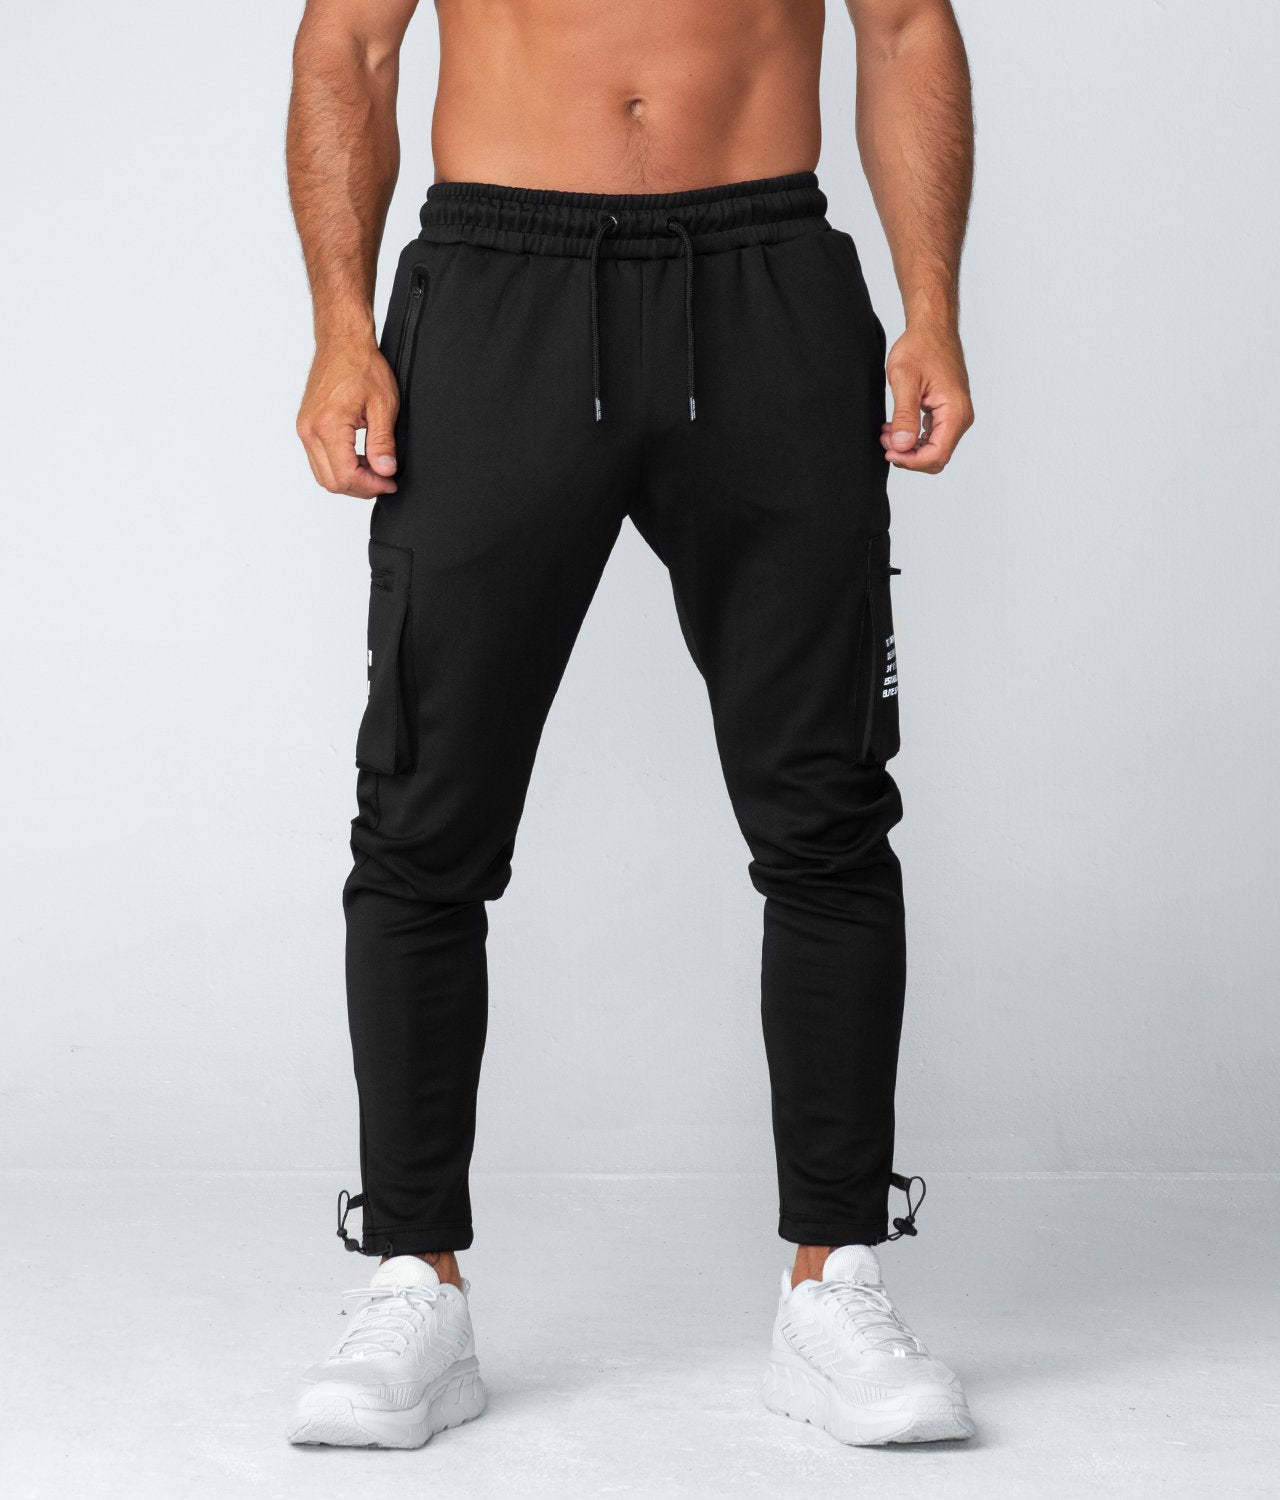 Born Tough United Kingdom Momentum Fitted Cargo High-Quality Gym Workout Jogger Pants For Men Black